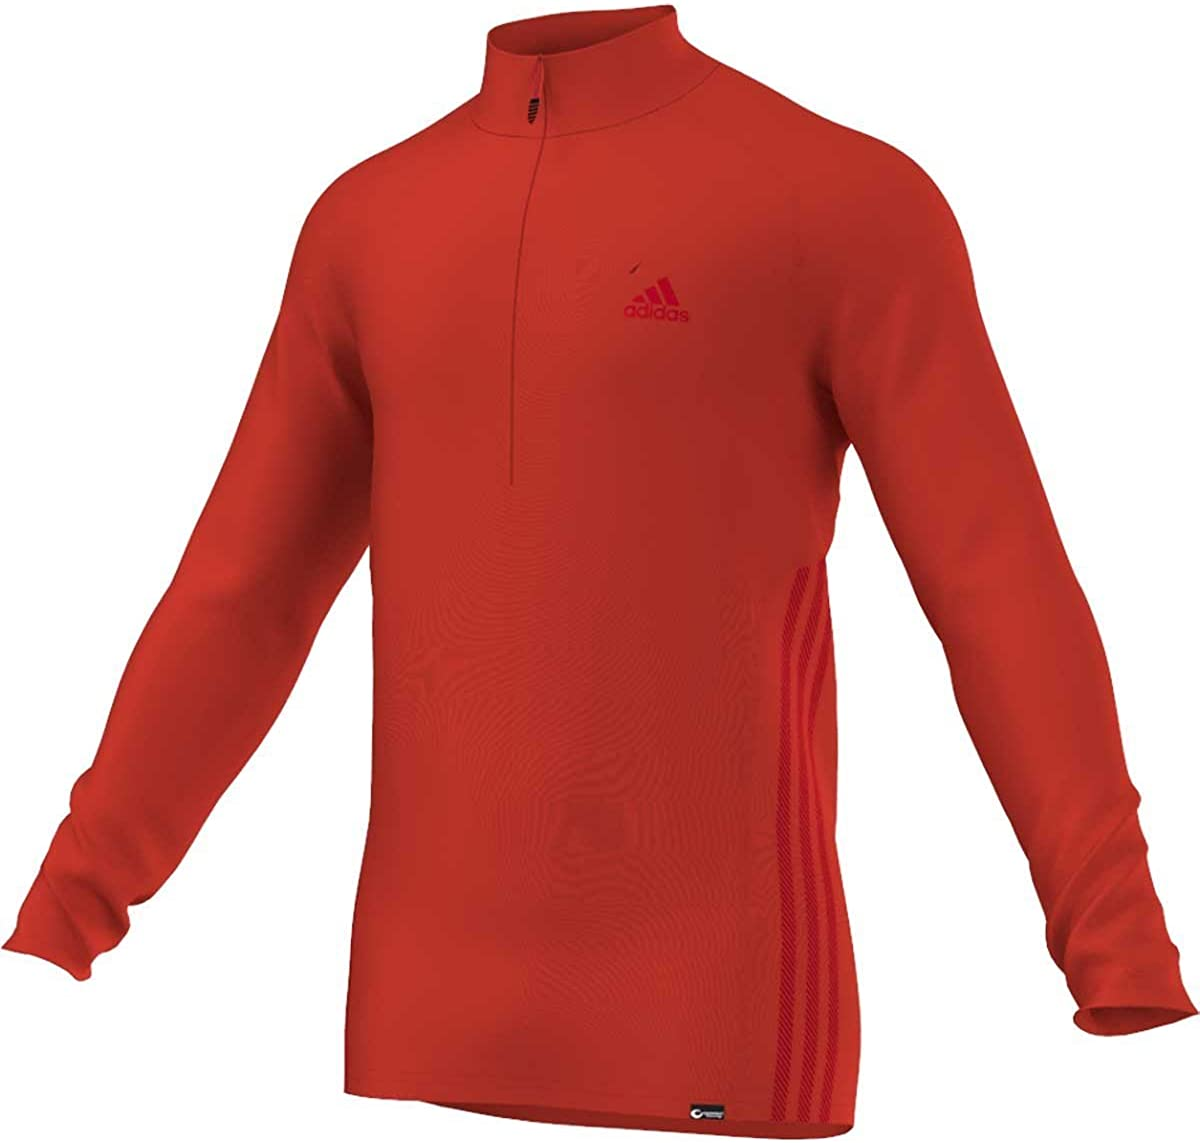 Red Sports Running Outdoors Breathable adidas Mens Terrex T Shirt Tee Top